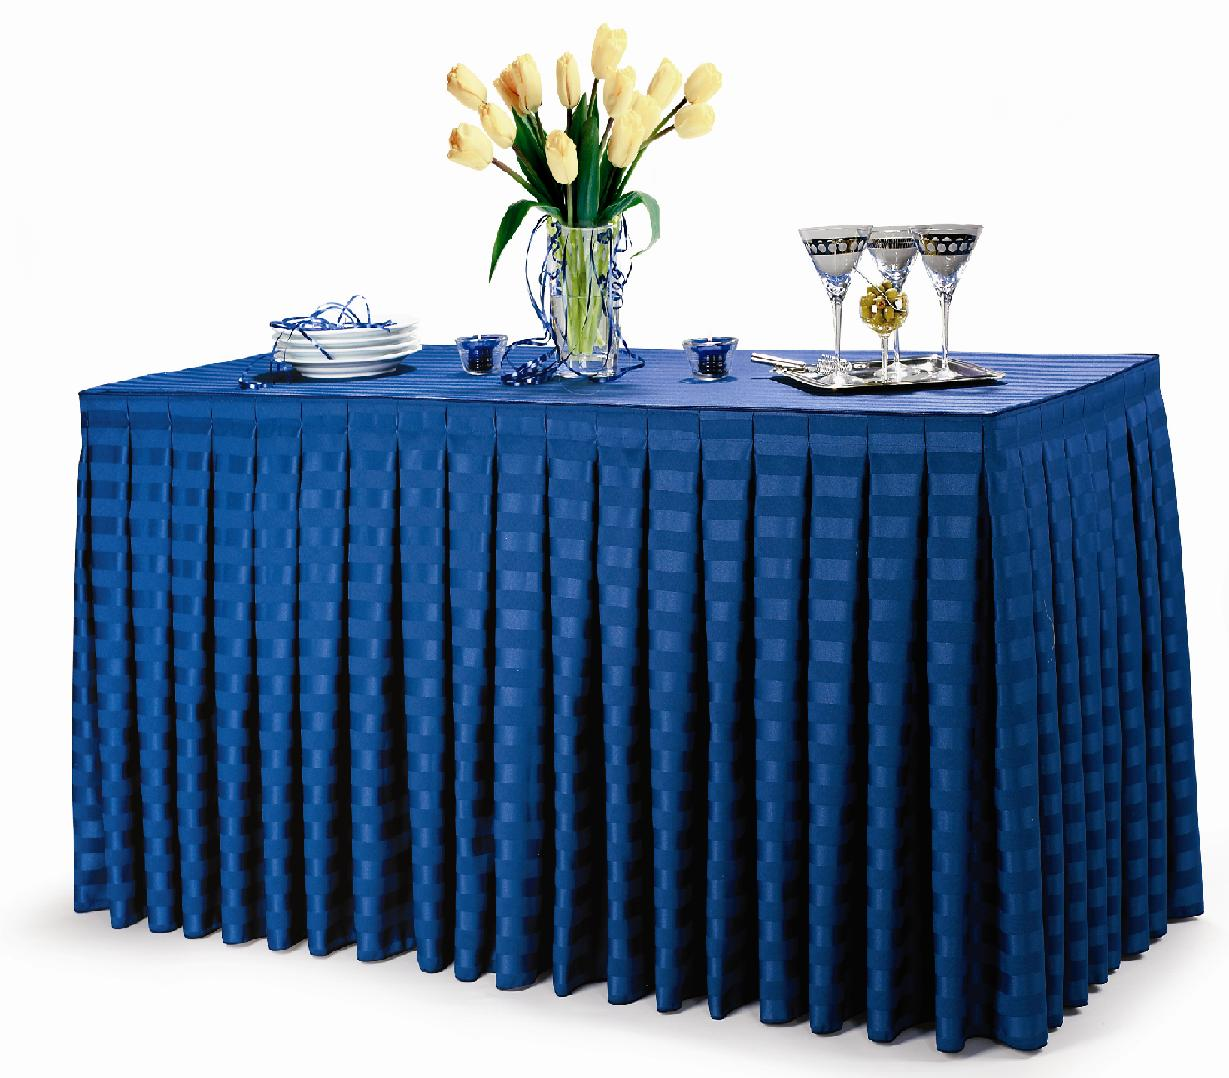 poly stripe table skirts premier linens round accent are very impressive radiant that will lend air upscale elegance any setting popular with party rental target baby bedding slim